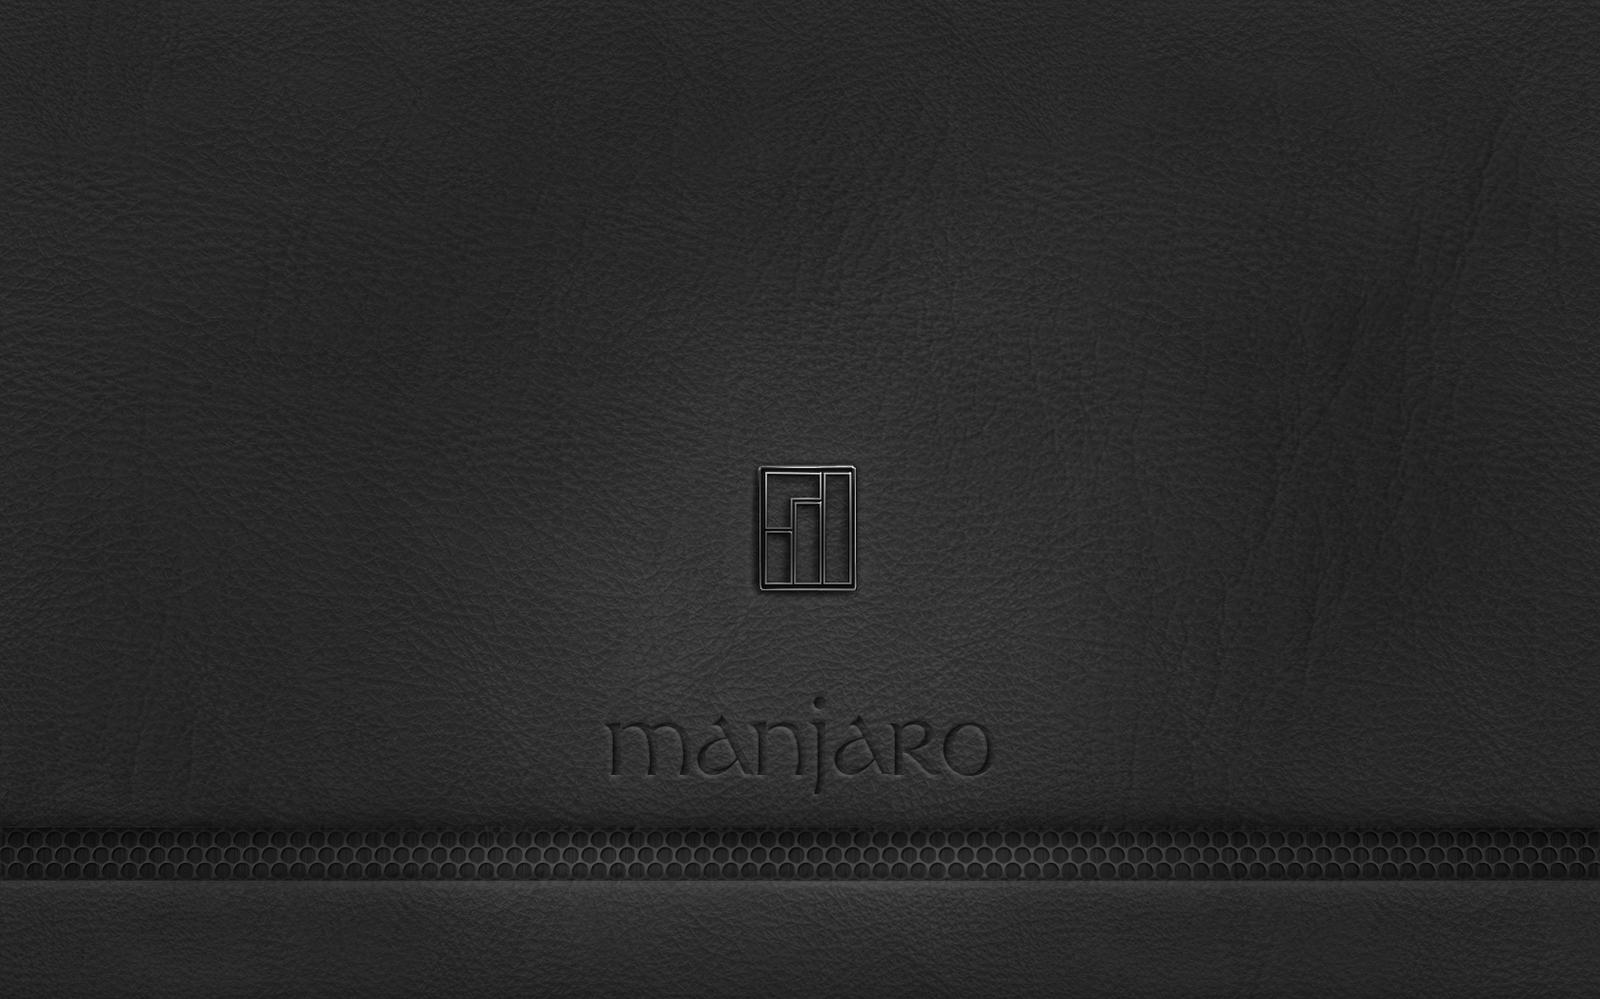 Black-Leather-Manjaro-Wallpaper by Tefrem34 on DeviantArt